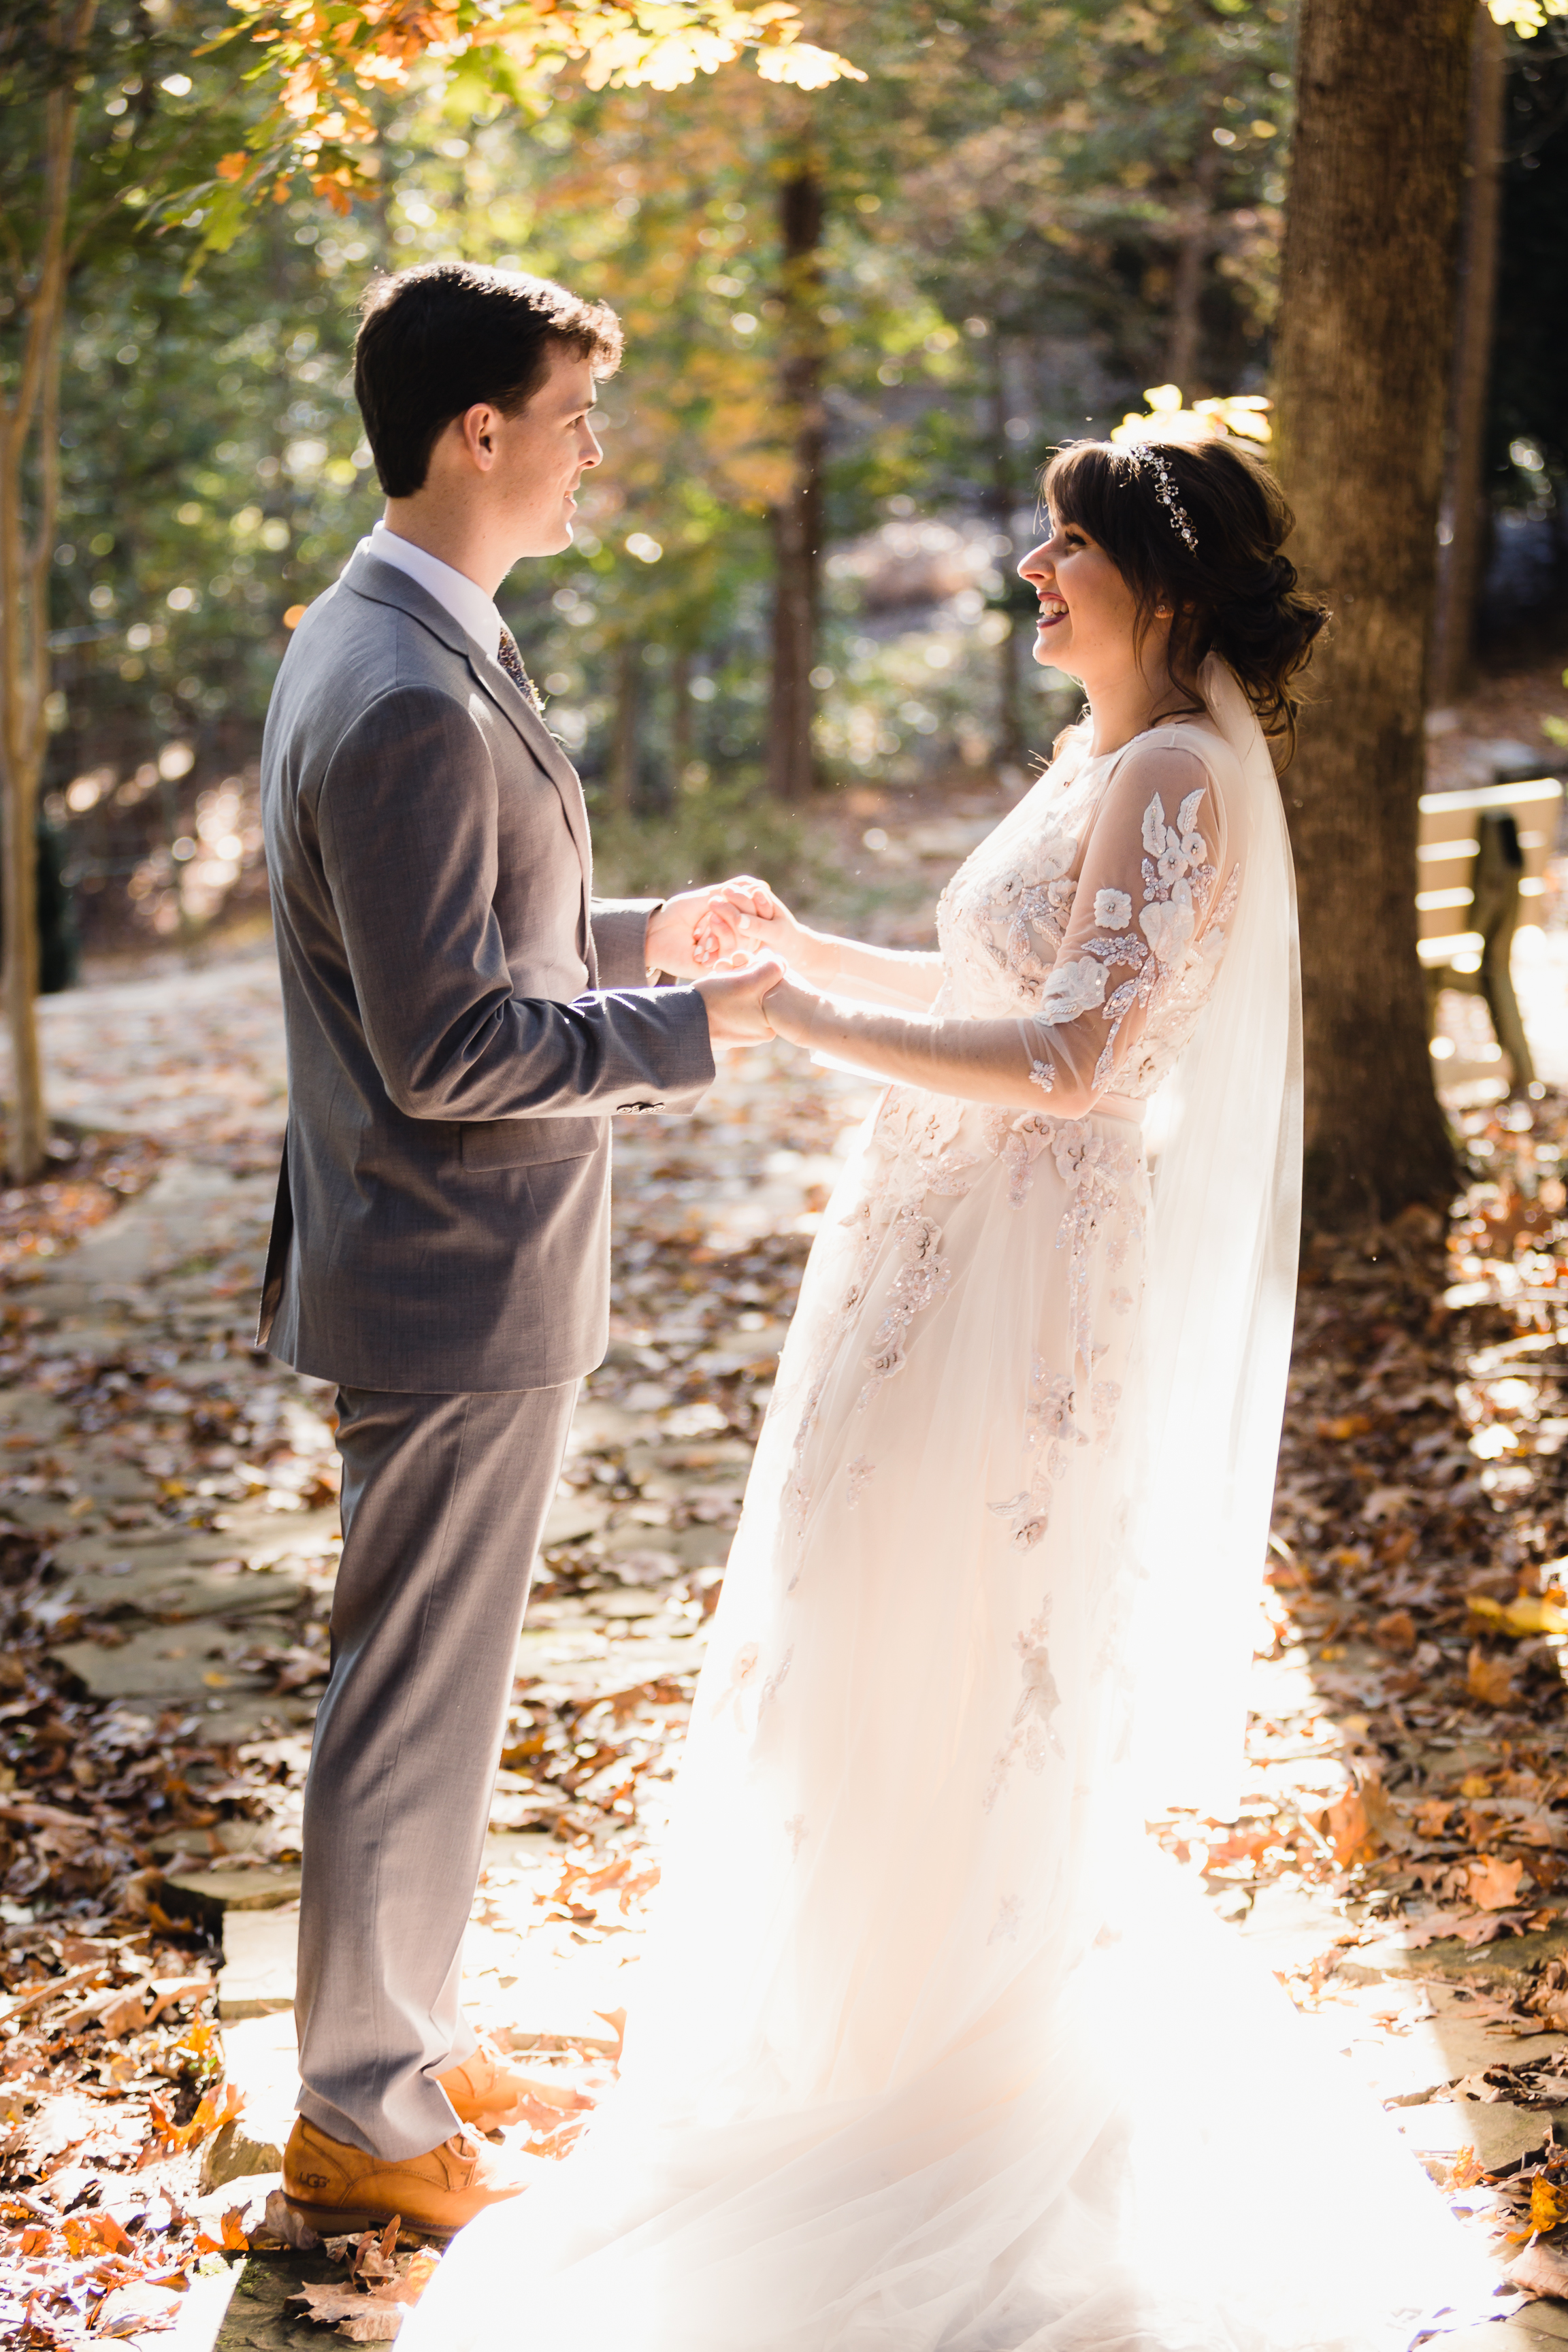 Gianna Keiko Atlanta NY Brooklyn Wedding Photographer-24.jpg